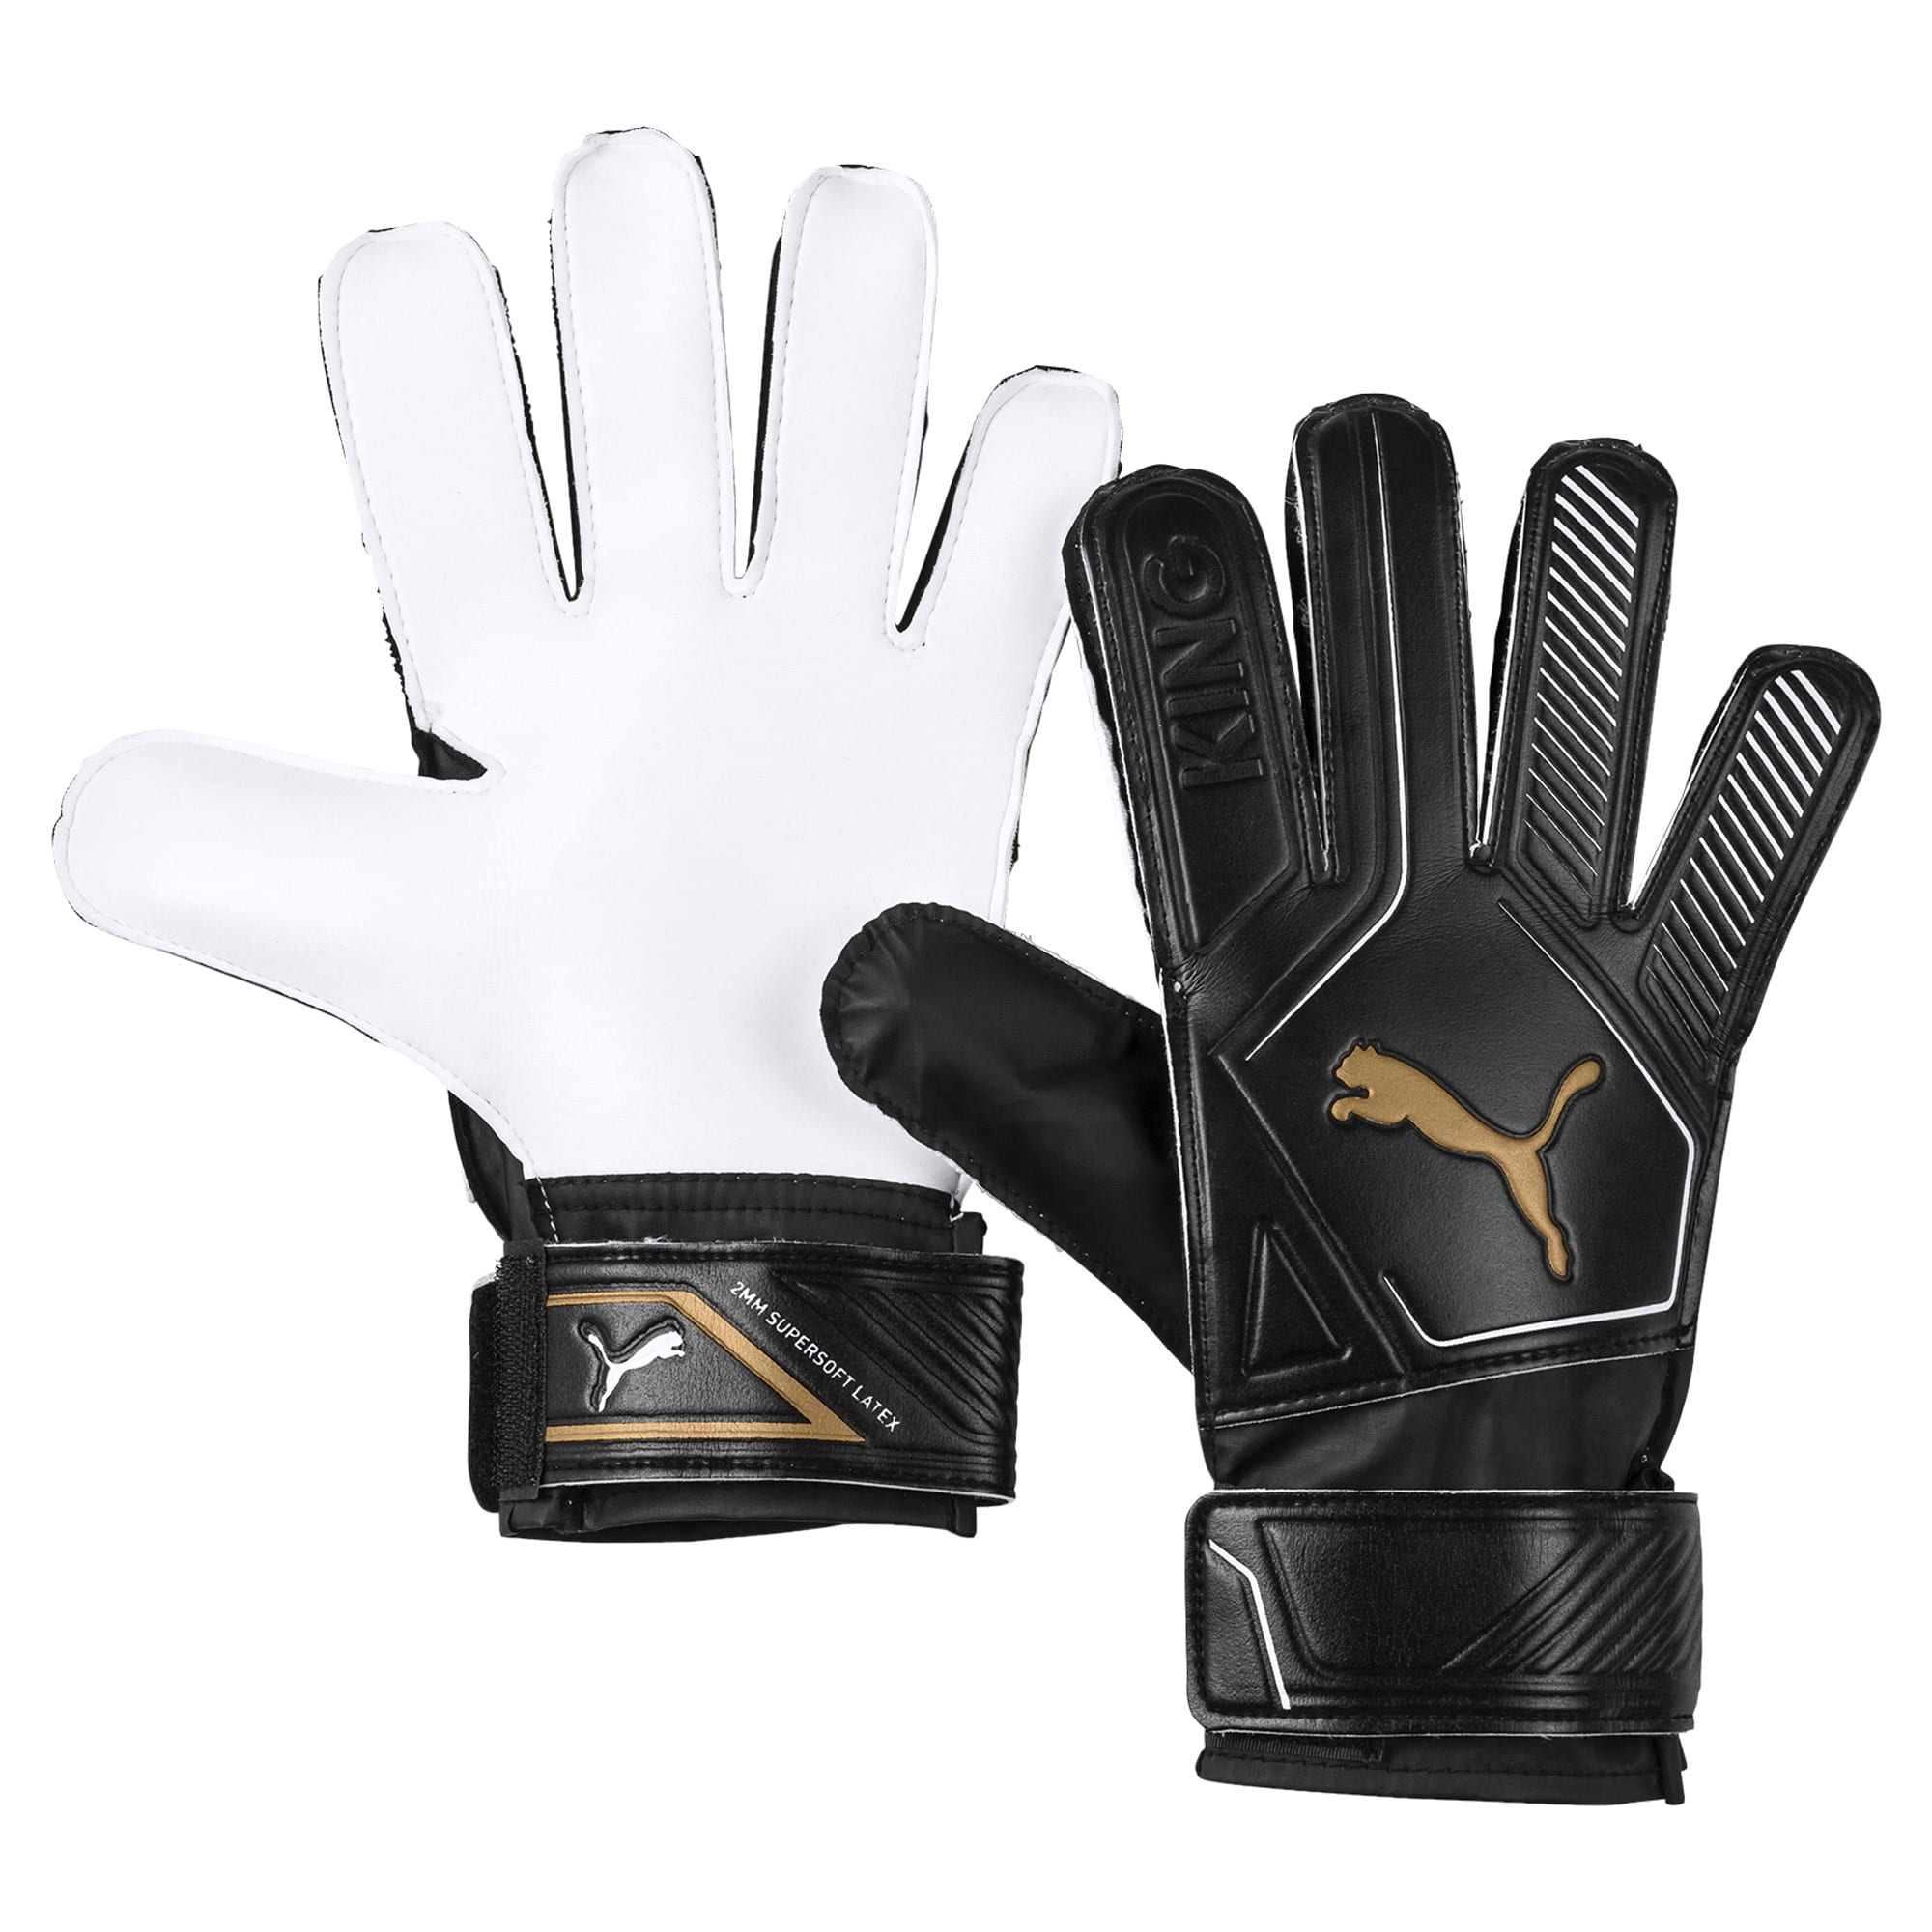 Thumbnail 1 of King 4 Goalkeeper Gloves, Puma Black-Gold-Puma White, medium